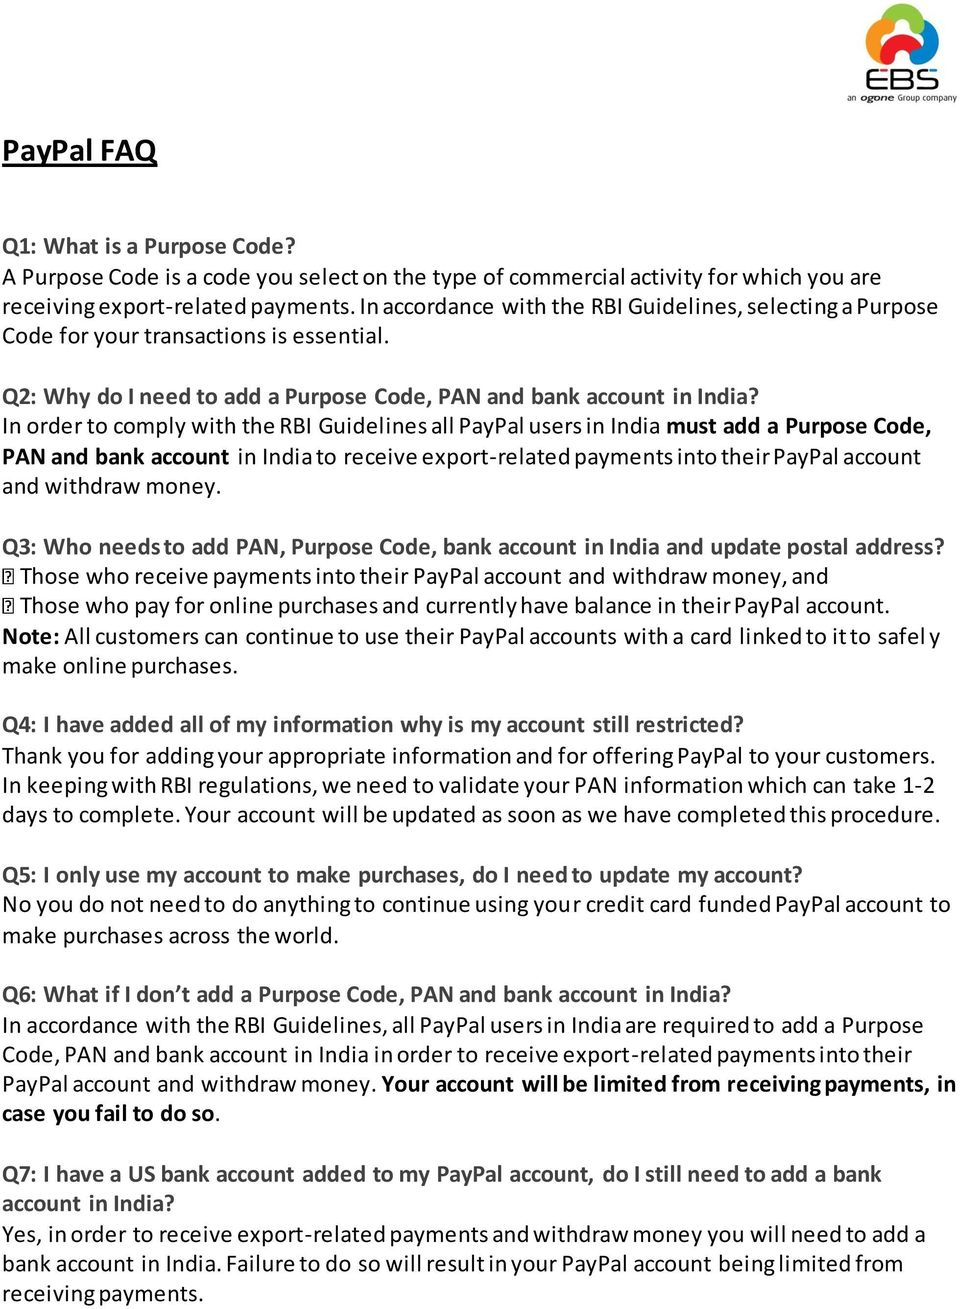 In order to comply with the RBI Guidelines all PayPal users in India must add a Purpose Code, PAN and bank account in India to receive export-related payments into their PayPal account and withdraw